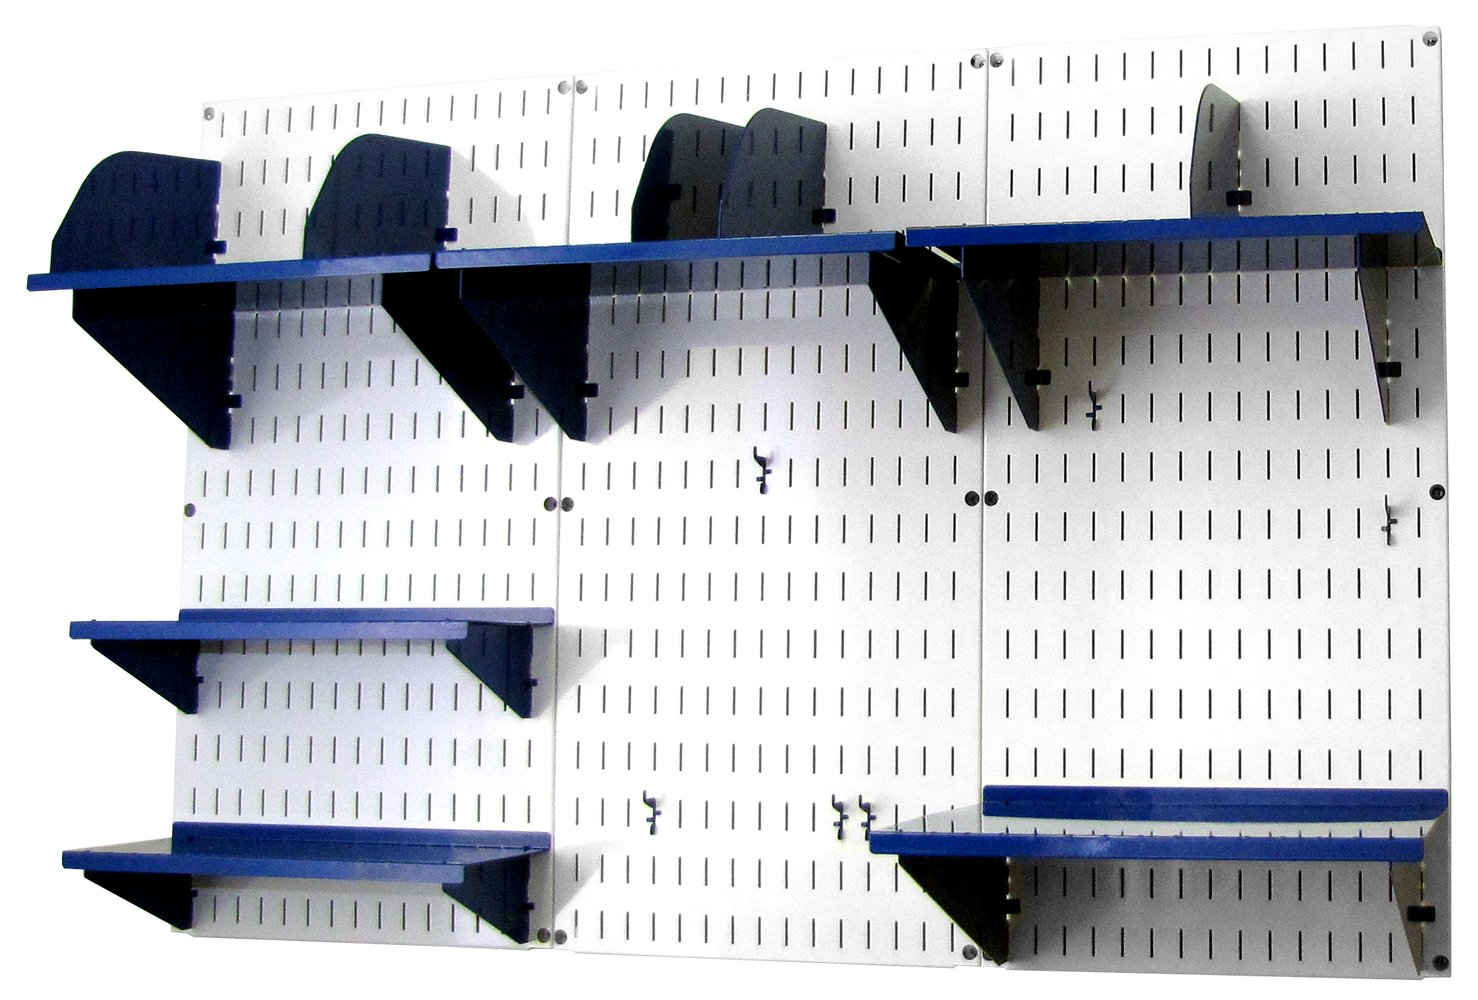 Wall Control Office Organizer Unit Wall Mounted Desk Storage and Blue Accessories (10-OFC-300 WBU)